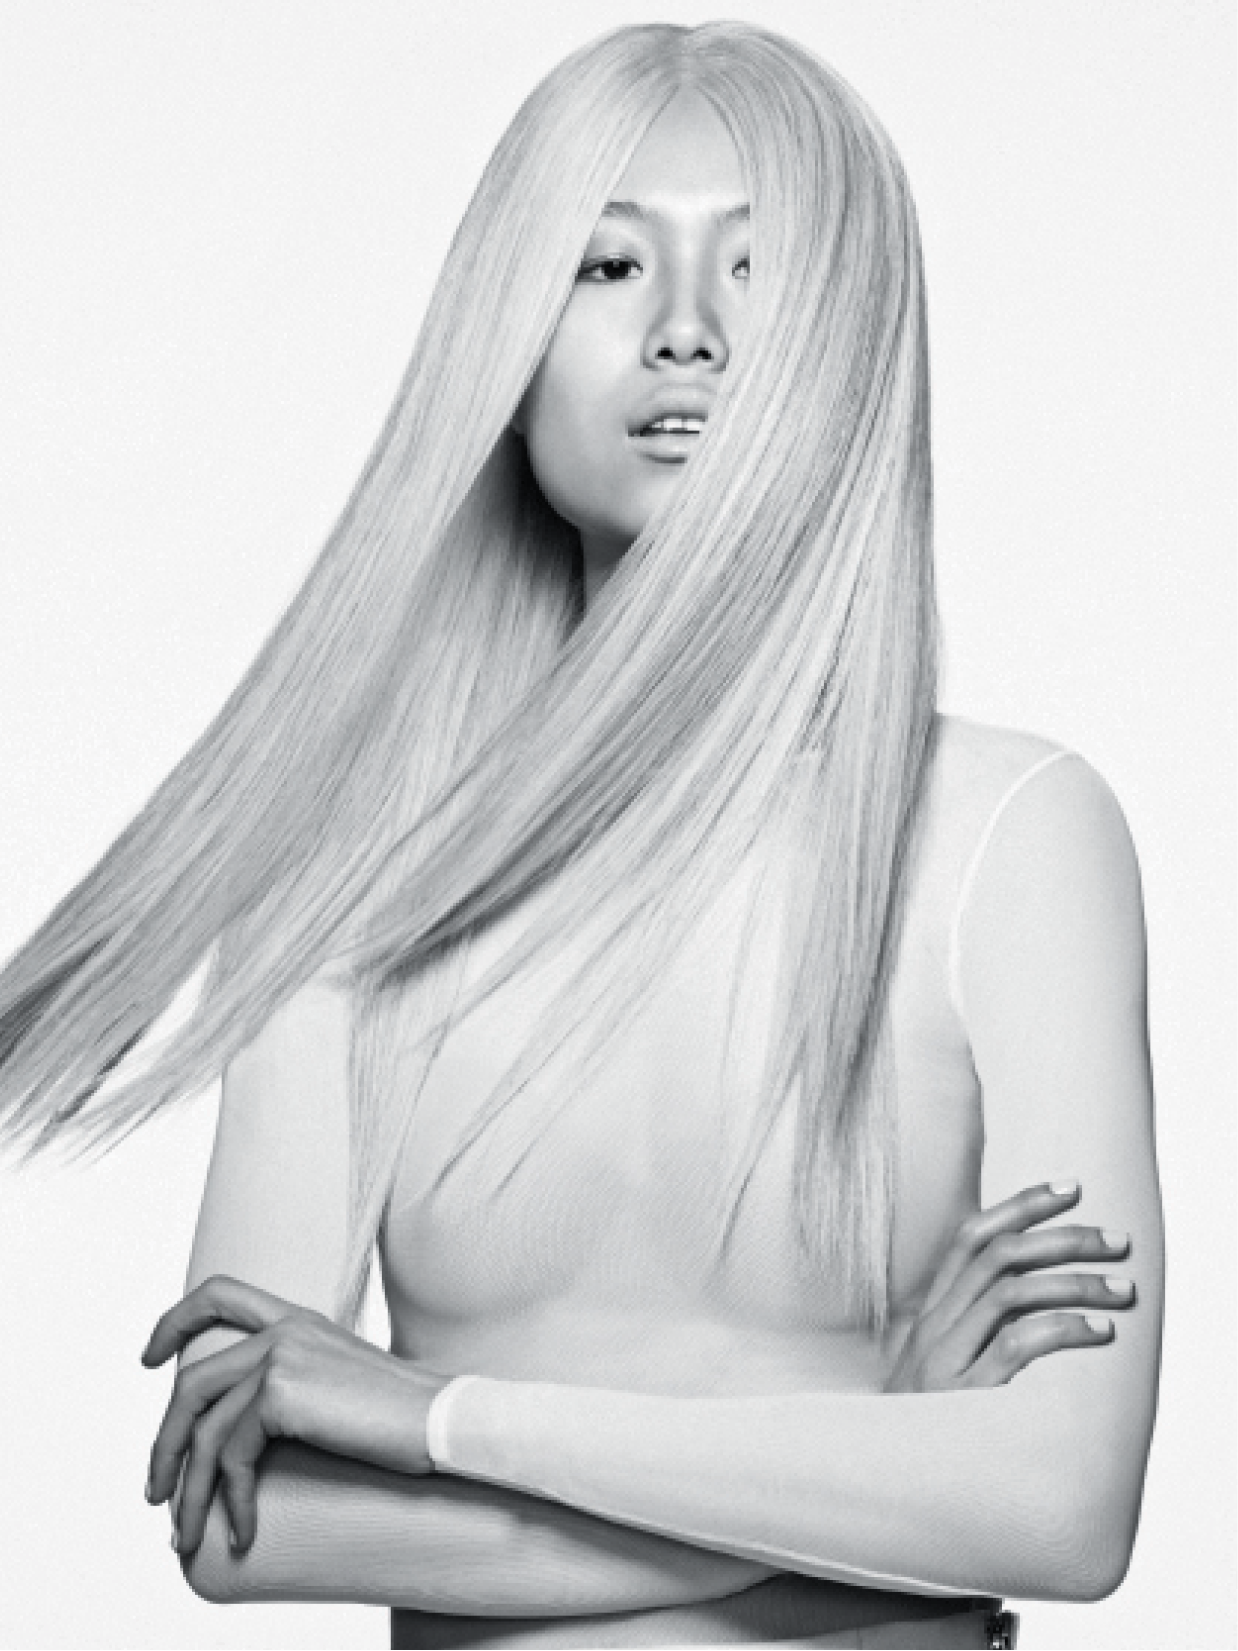 Alexander Turnbull achieved this icy blonde with Matrix bleach and toned the color using Matrix cream developer. He used a slide-cutting technique and a wind machine to create the desired look.